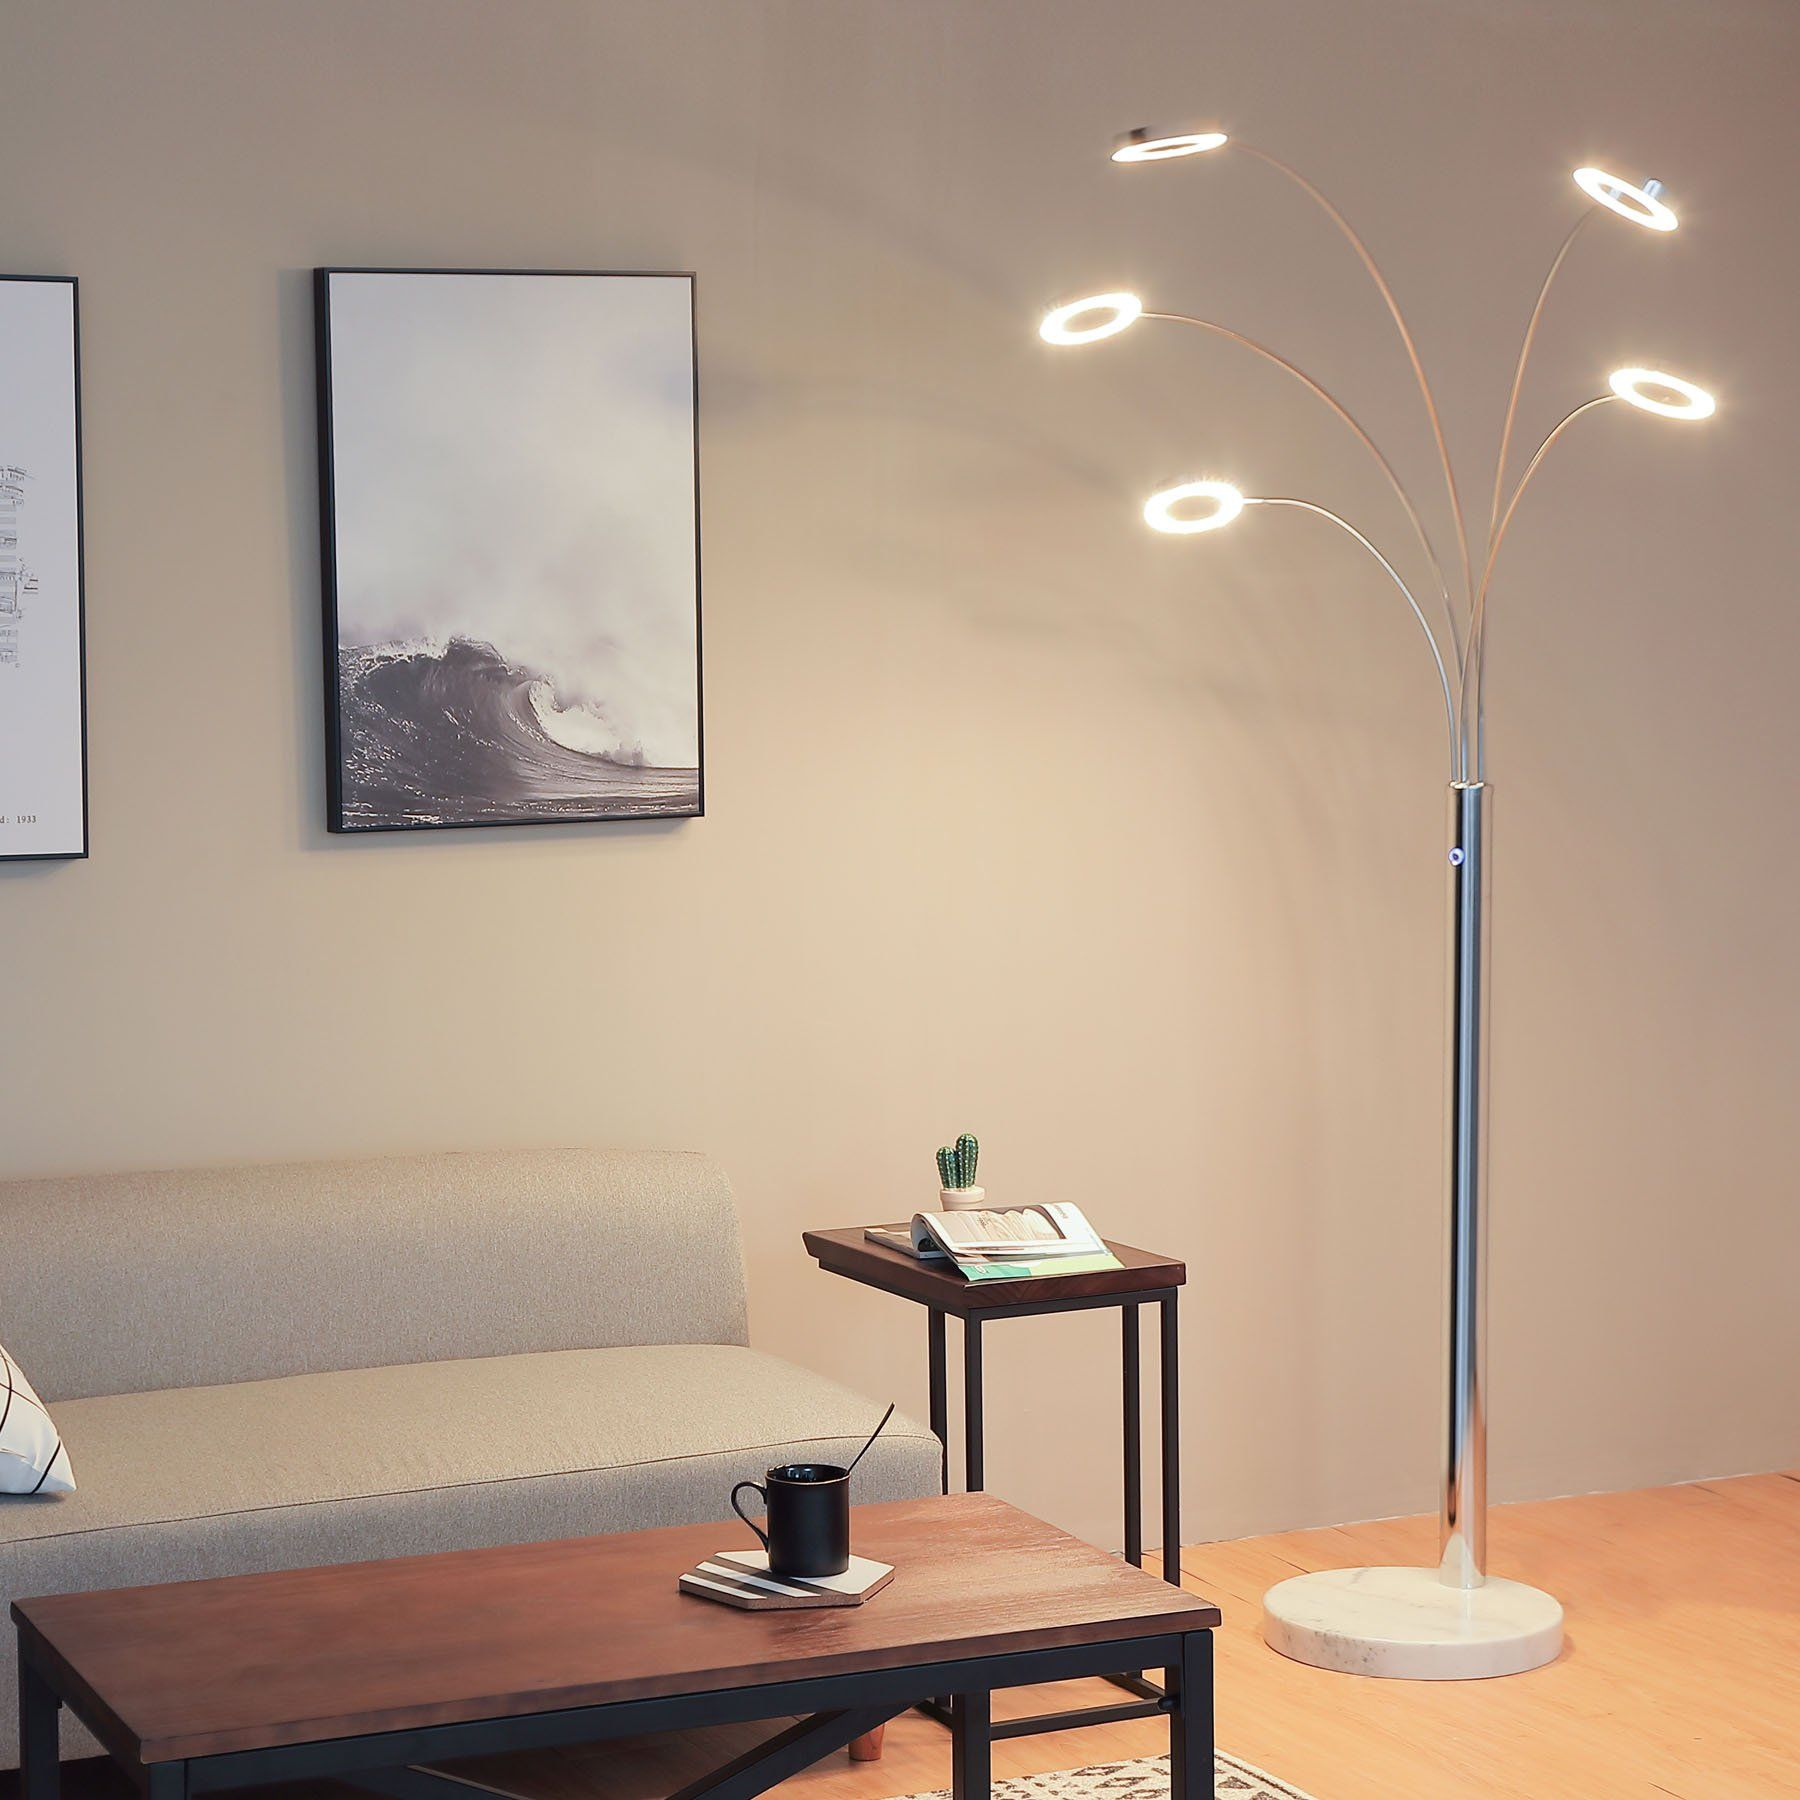 Coz Bright Led Floor Lamp With 5 Dimmable Lights Modern Standing